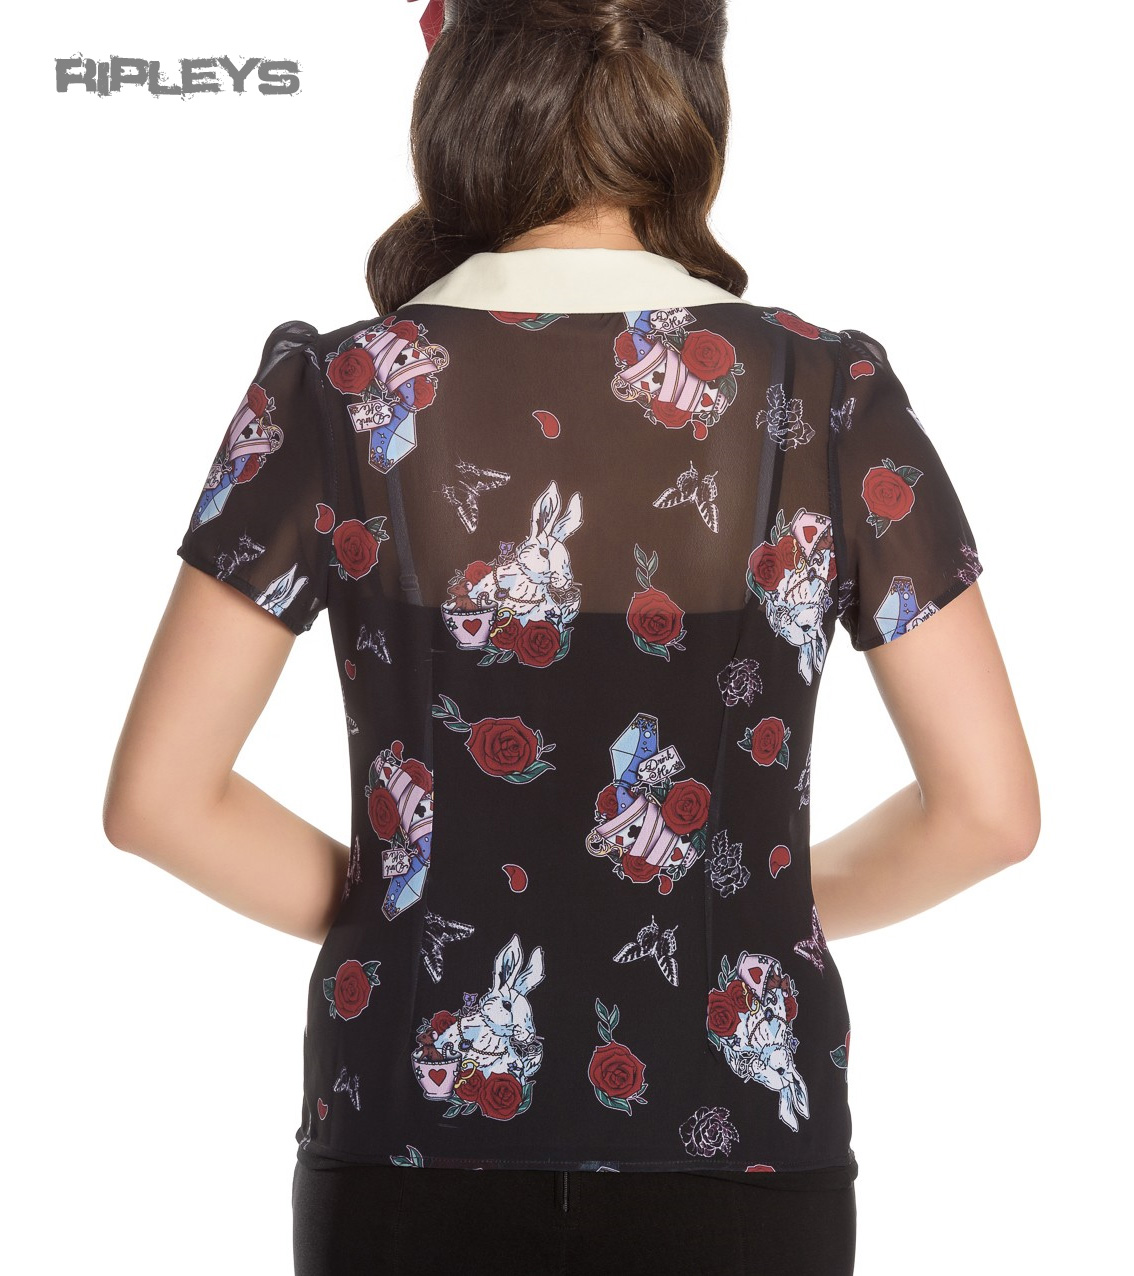 Hell-Bunny-Shirt-Top-Alice-in-Wonderland-Blouse-DRINK-ME-Roses-All-Sizes thumbnail 4